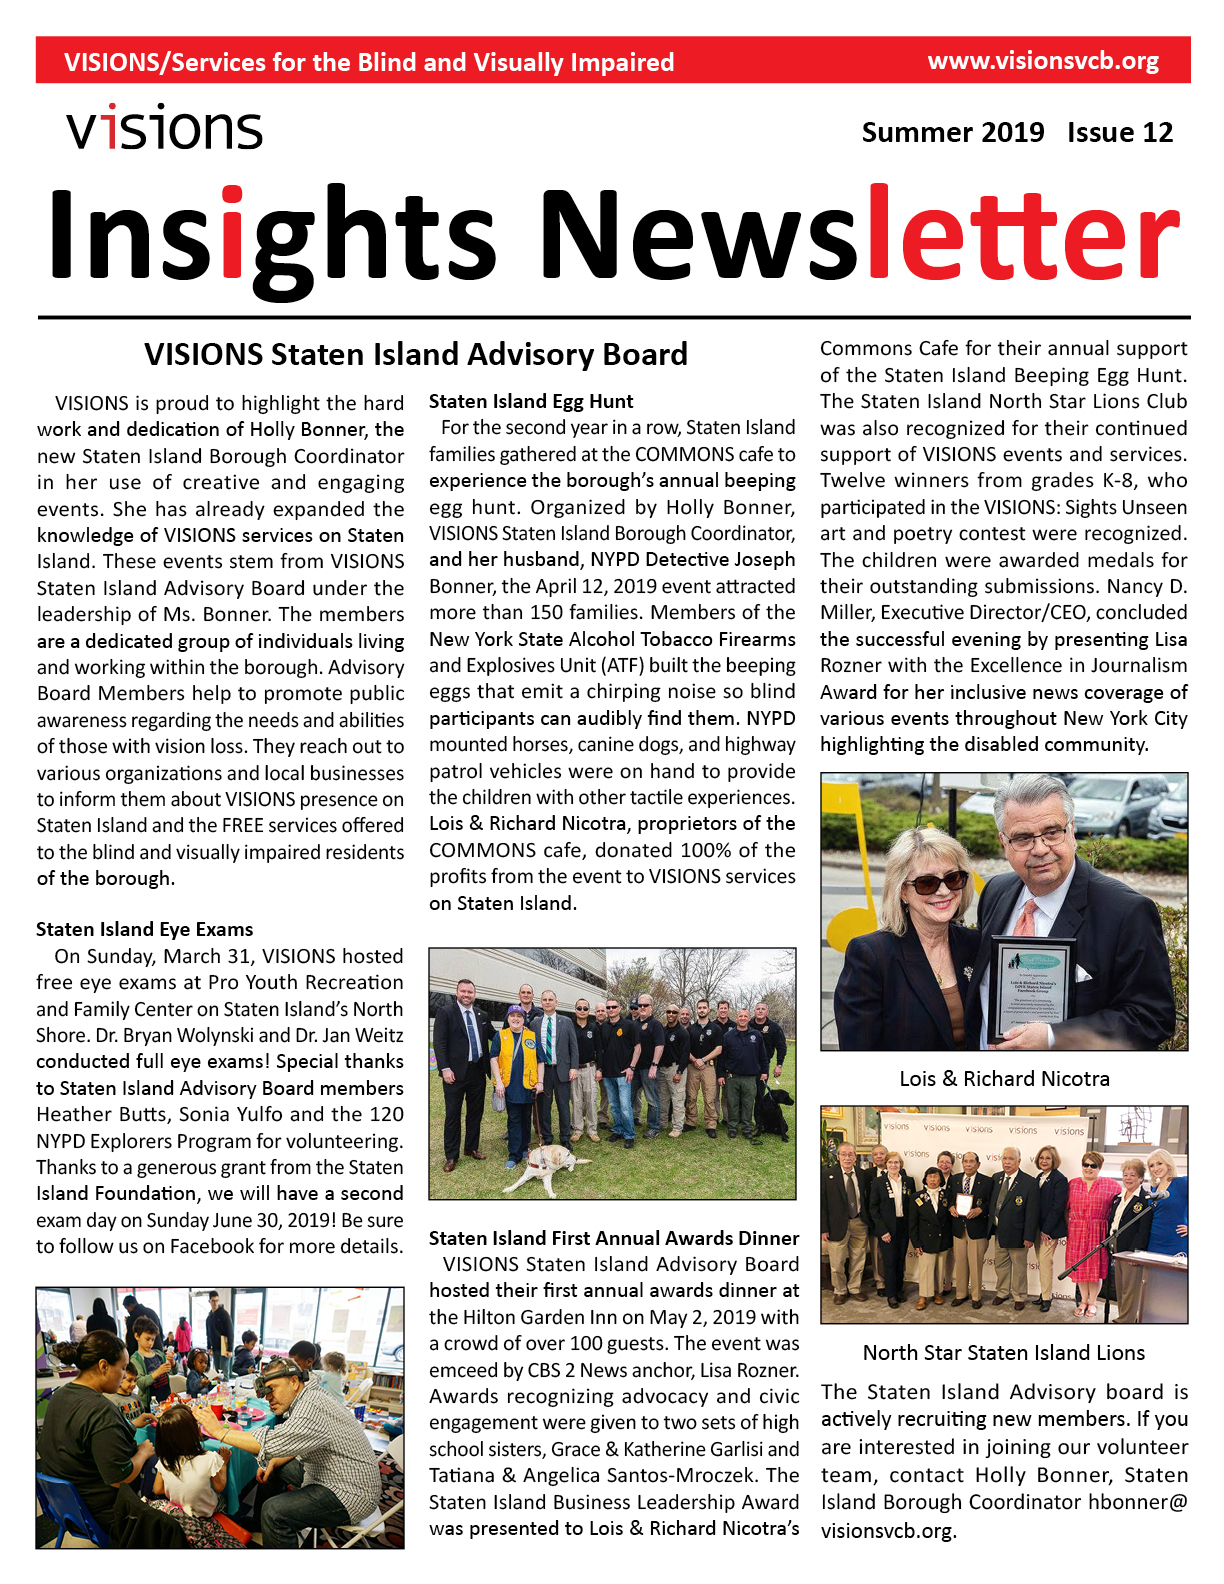 Graphic: VISIONS Insights newsletter, Summer 2019 issue cover. Double-tap or click to read this issue. This document will open as a PDF.